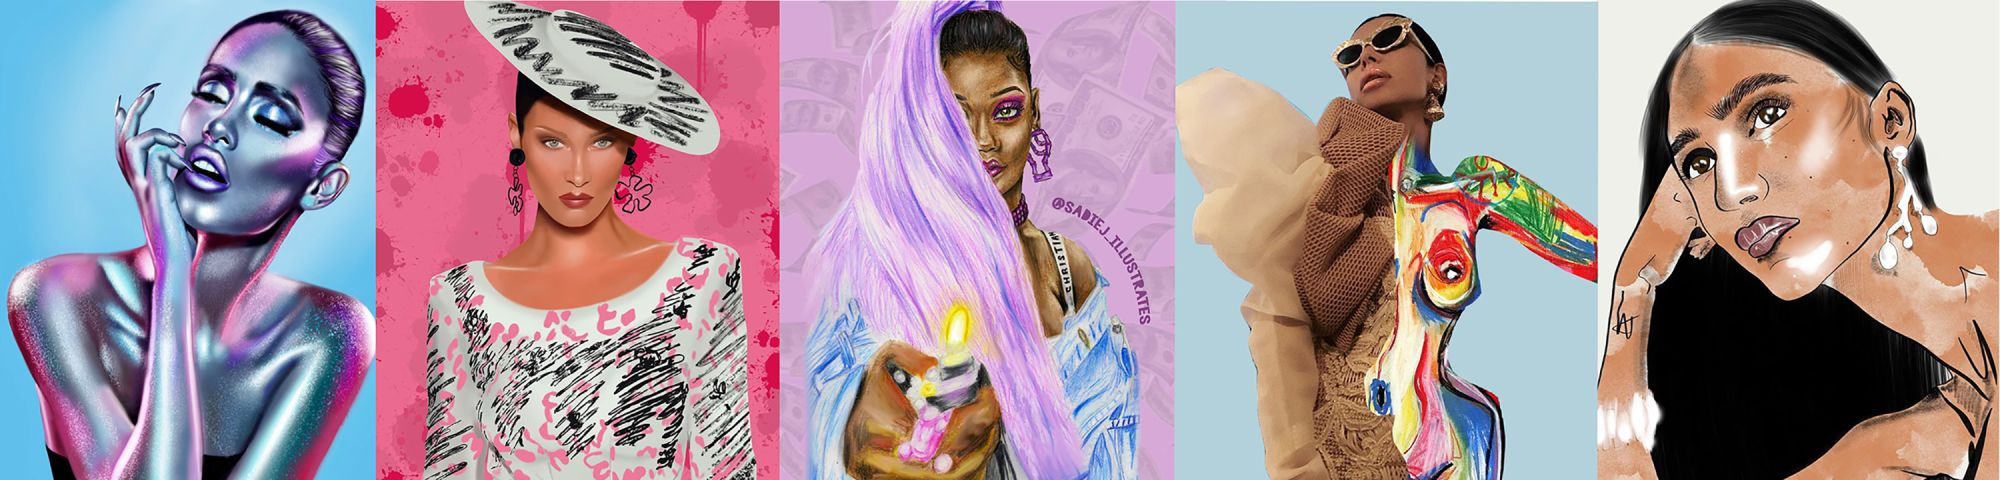 Compilation of five female fashion illustrations